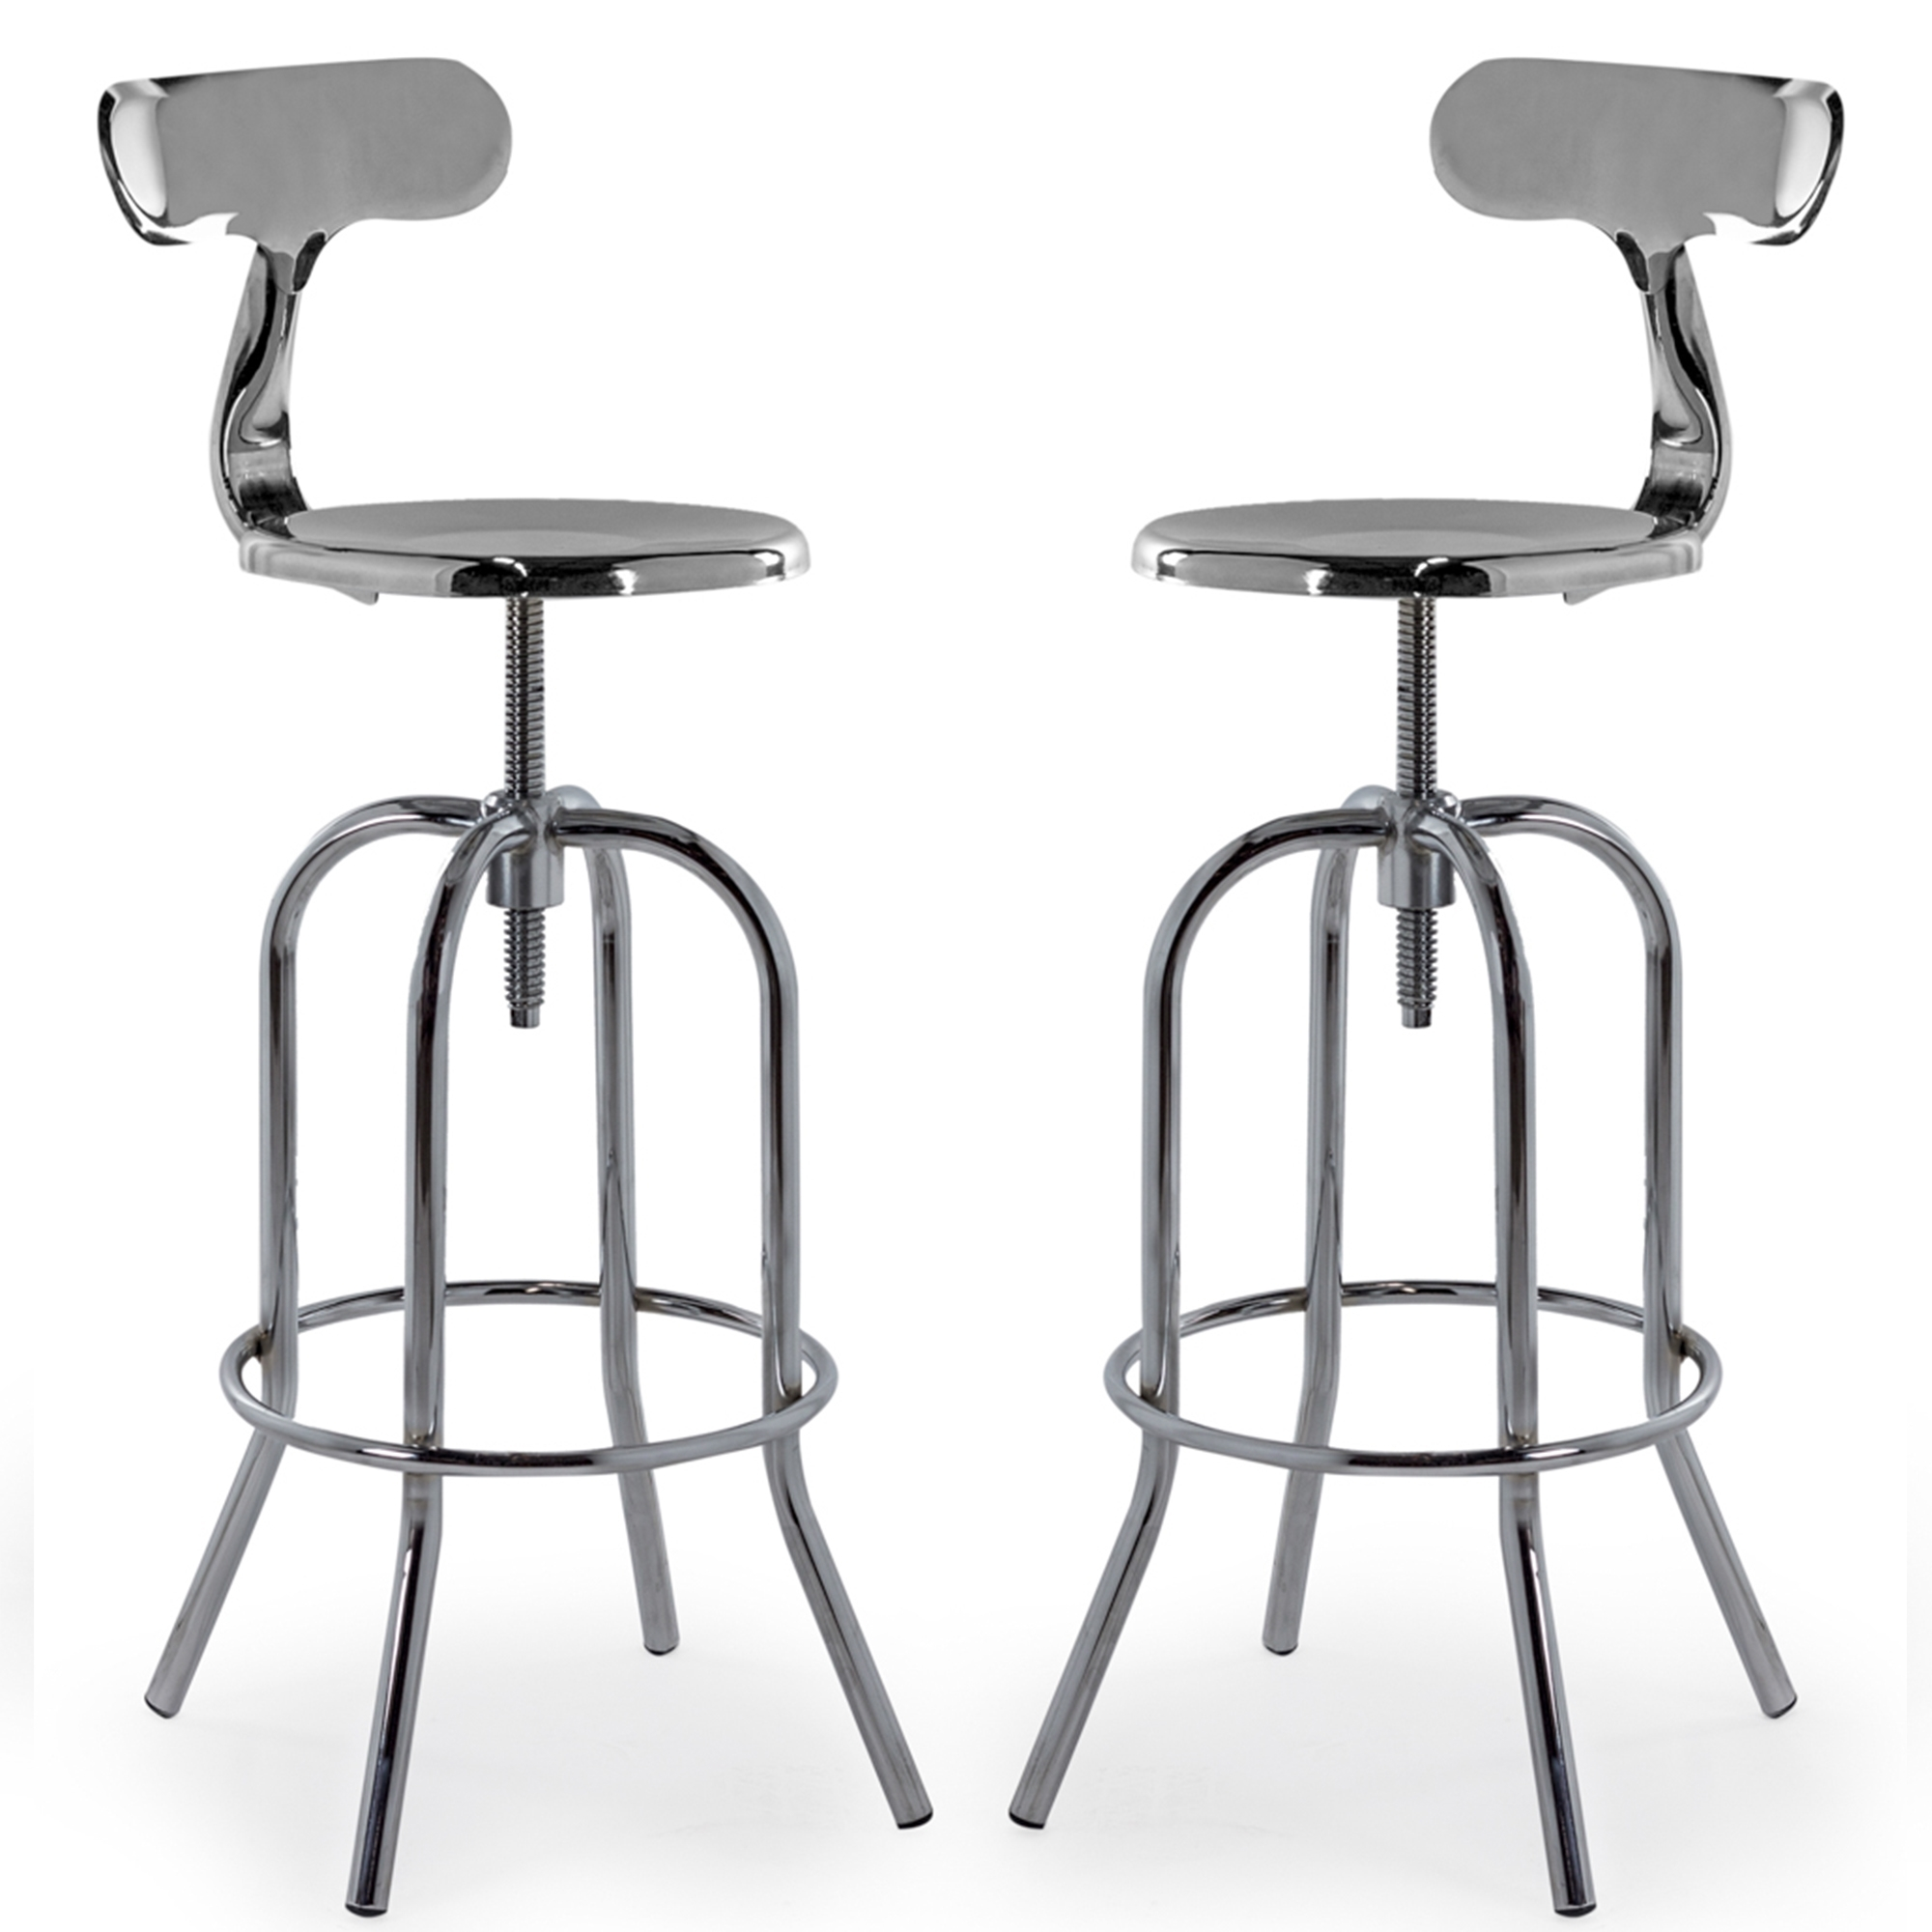 Pair of chrome bar stools with backrest